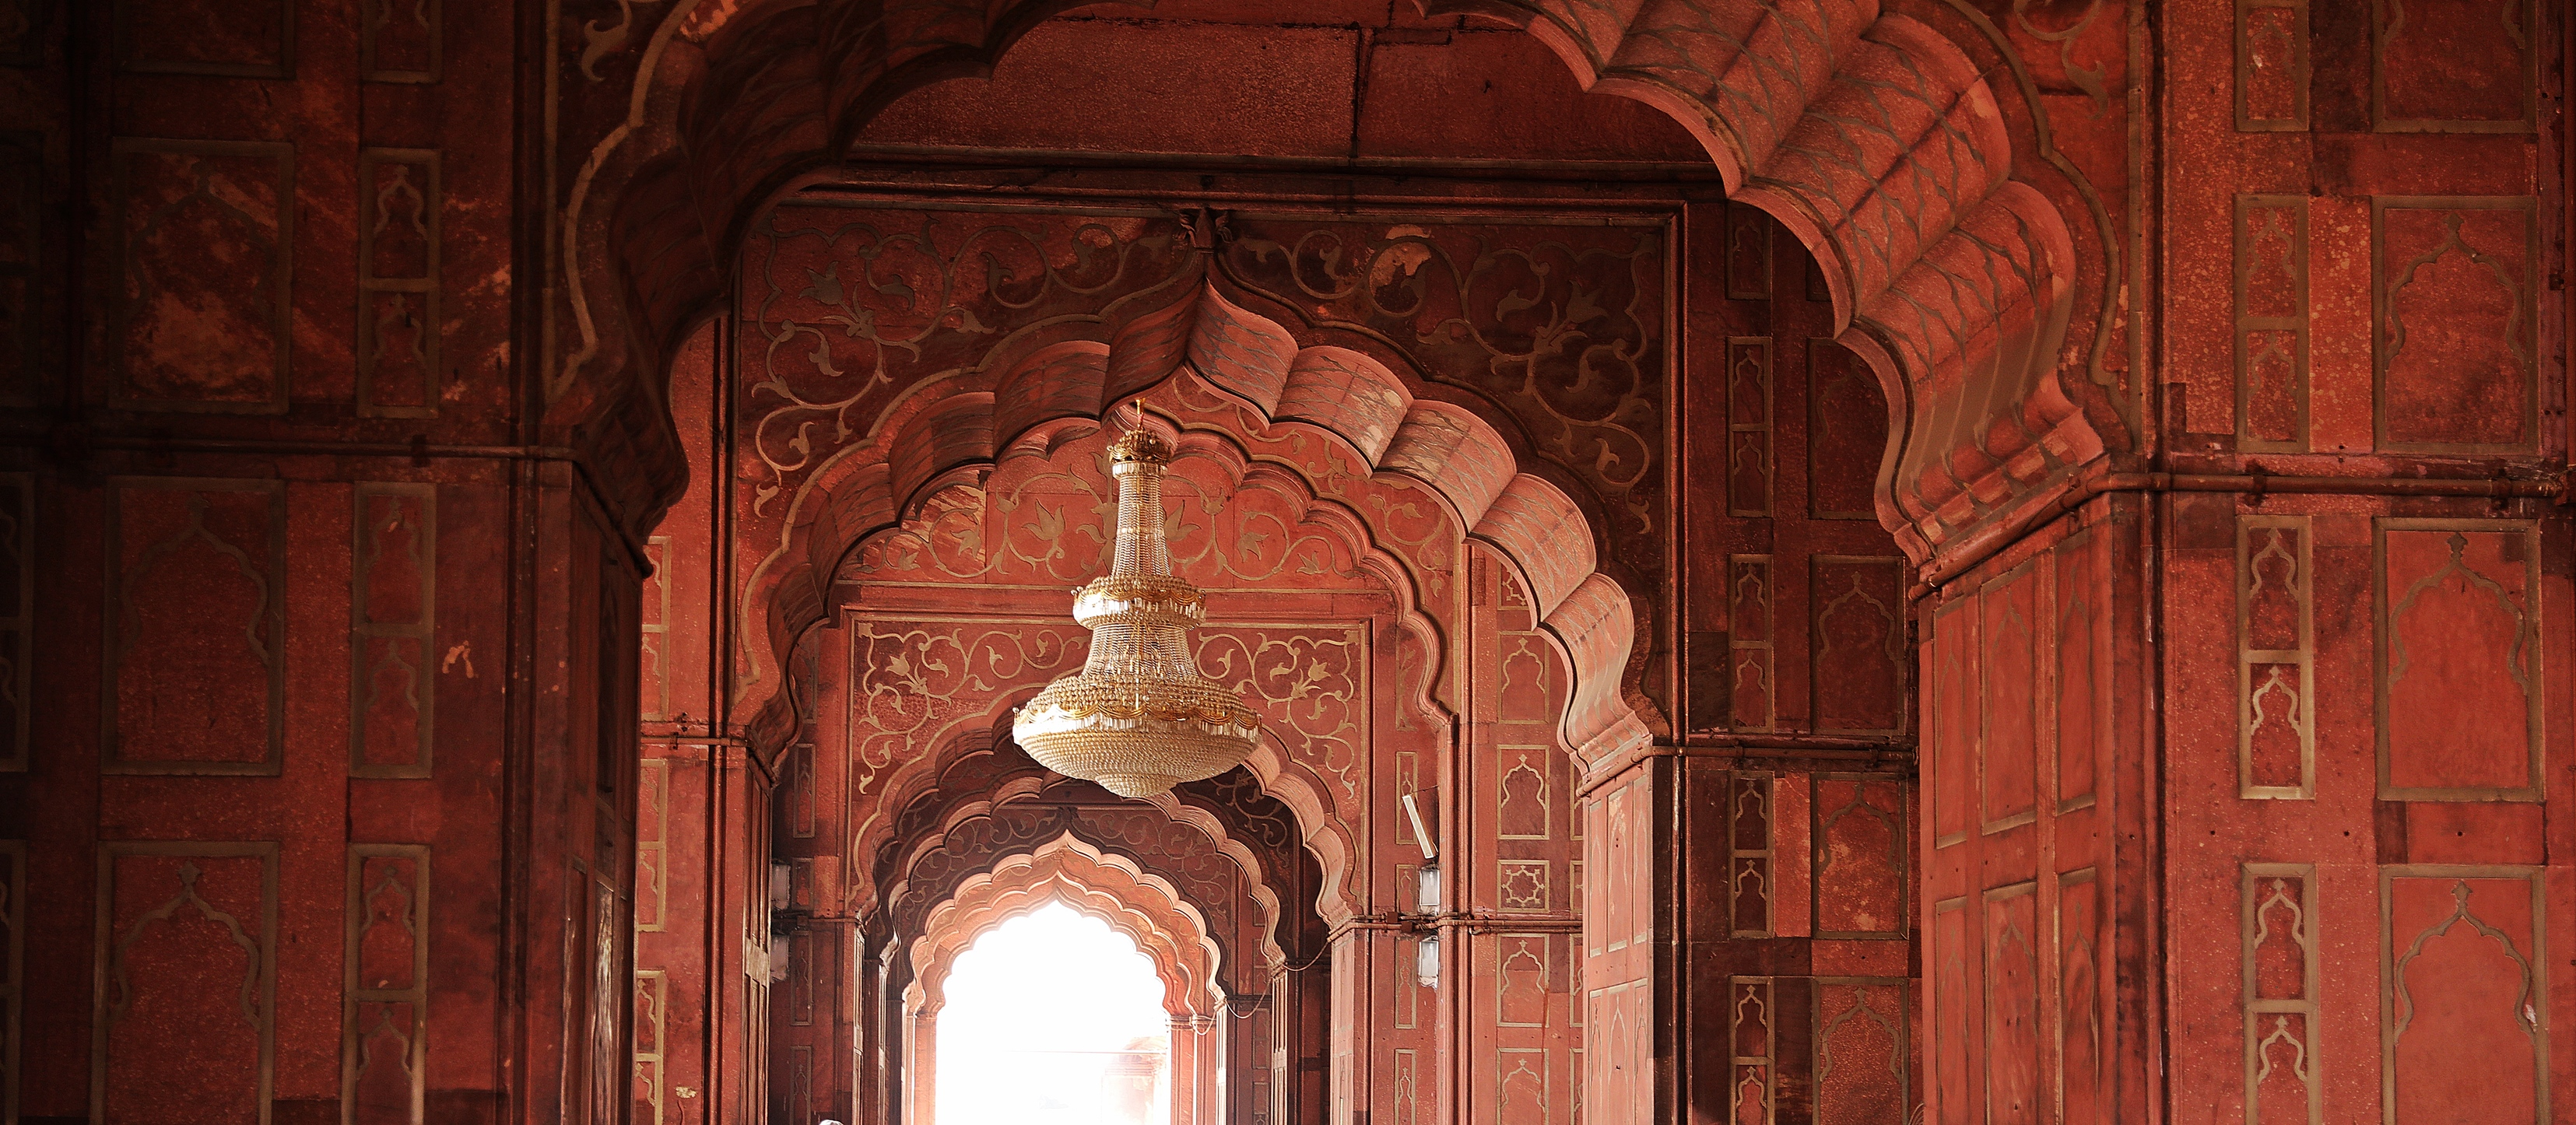 Arched doorways at Jama Masjid, Delhi